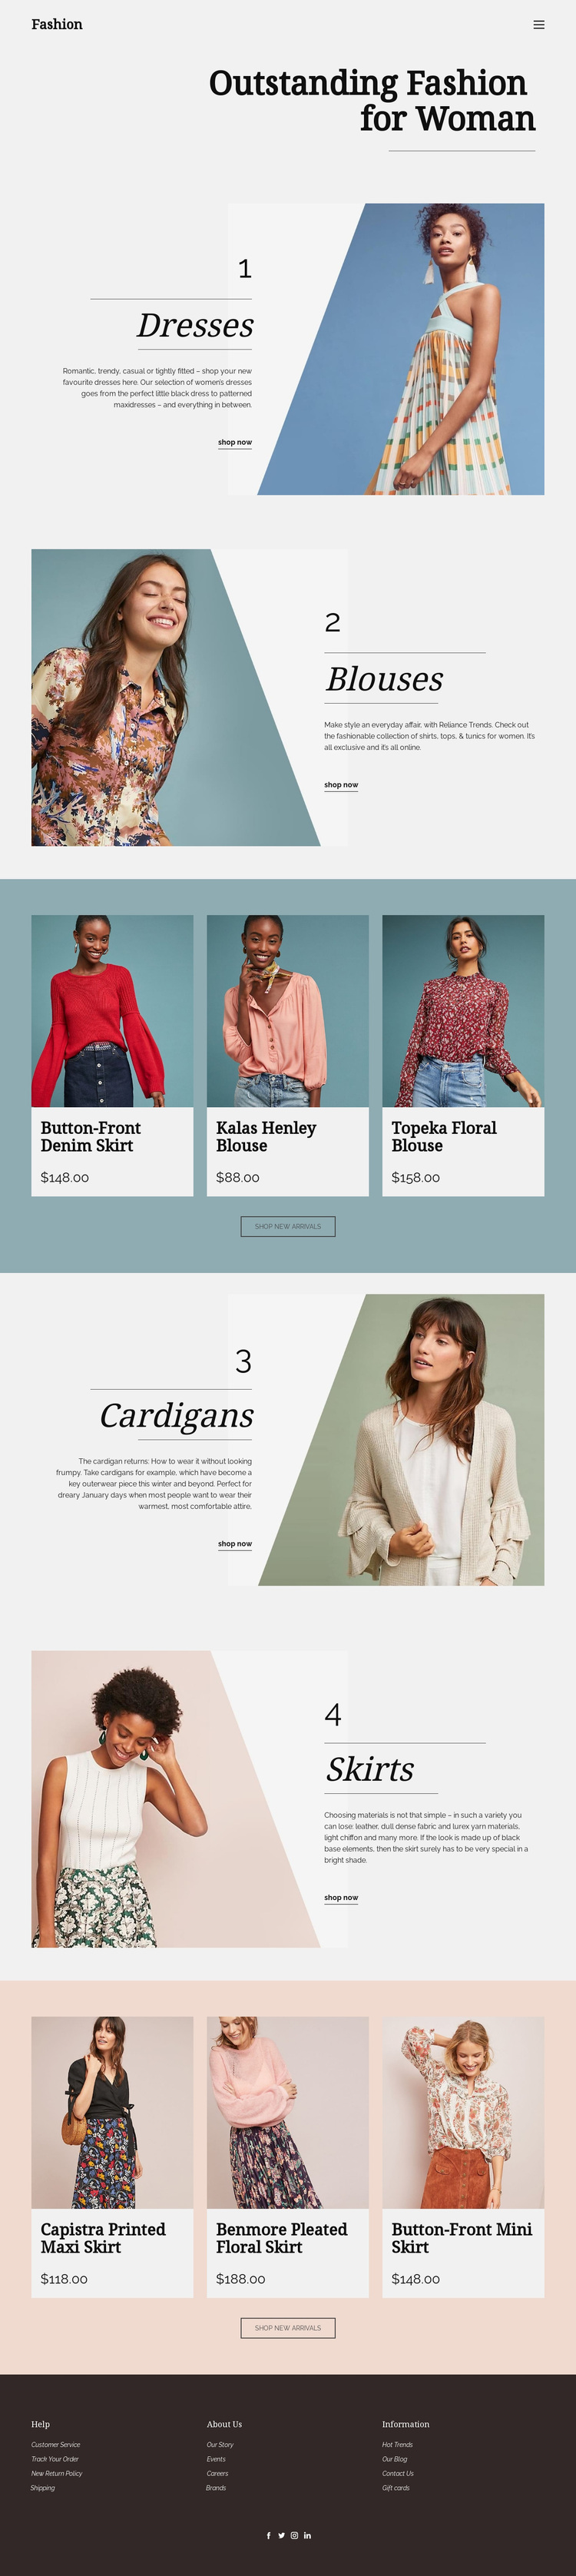 Fashion for Woman Website Design